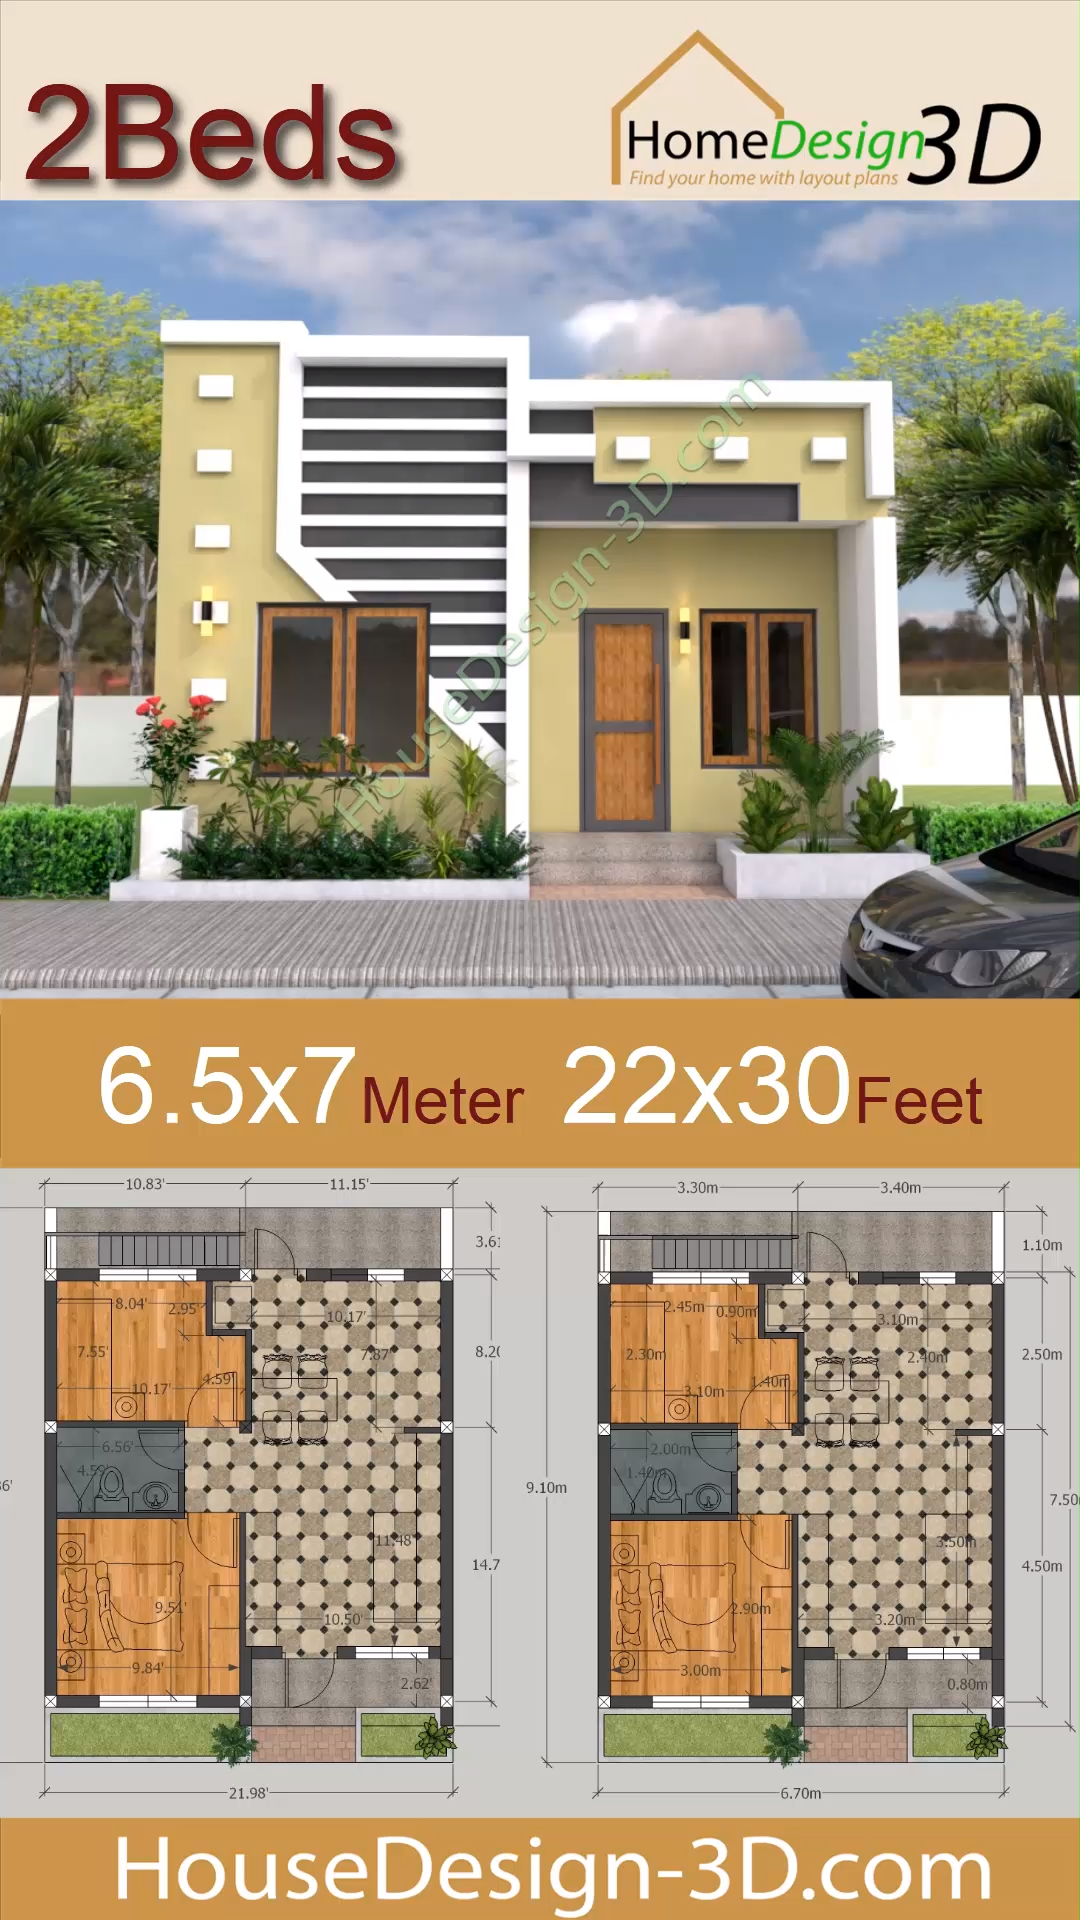 Small House Design 6.5×7 Meter with 2 Bedrooms 22×30 feet